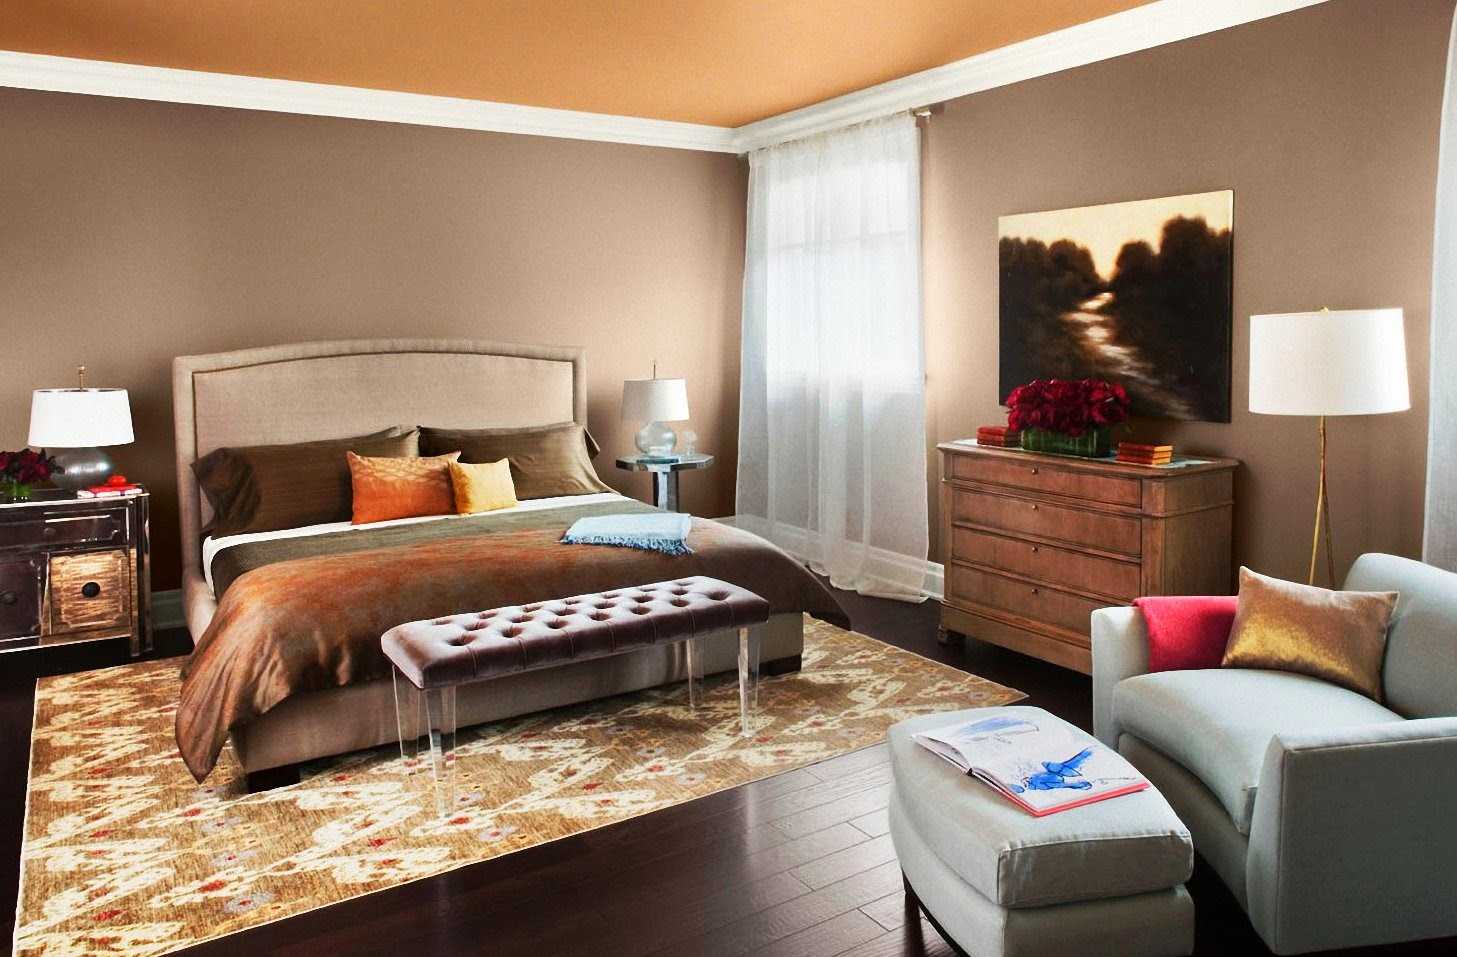 How To Design An Eclectic Bedroom Ideas For Home Decor